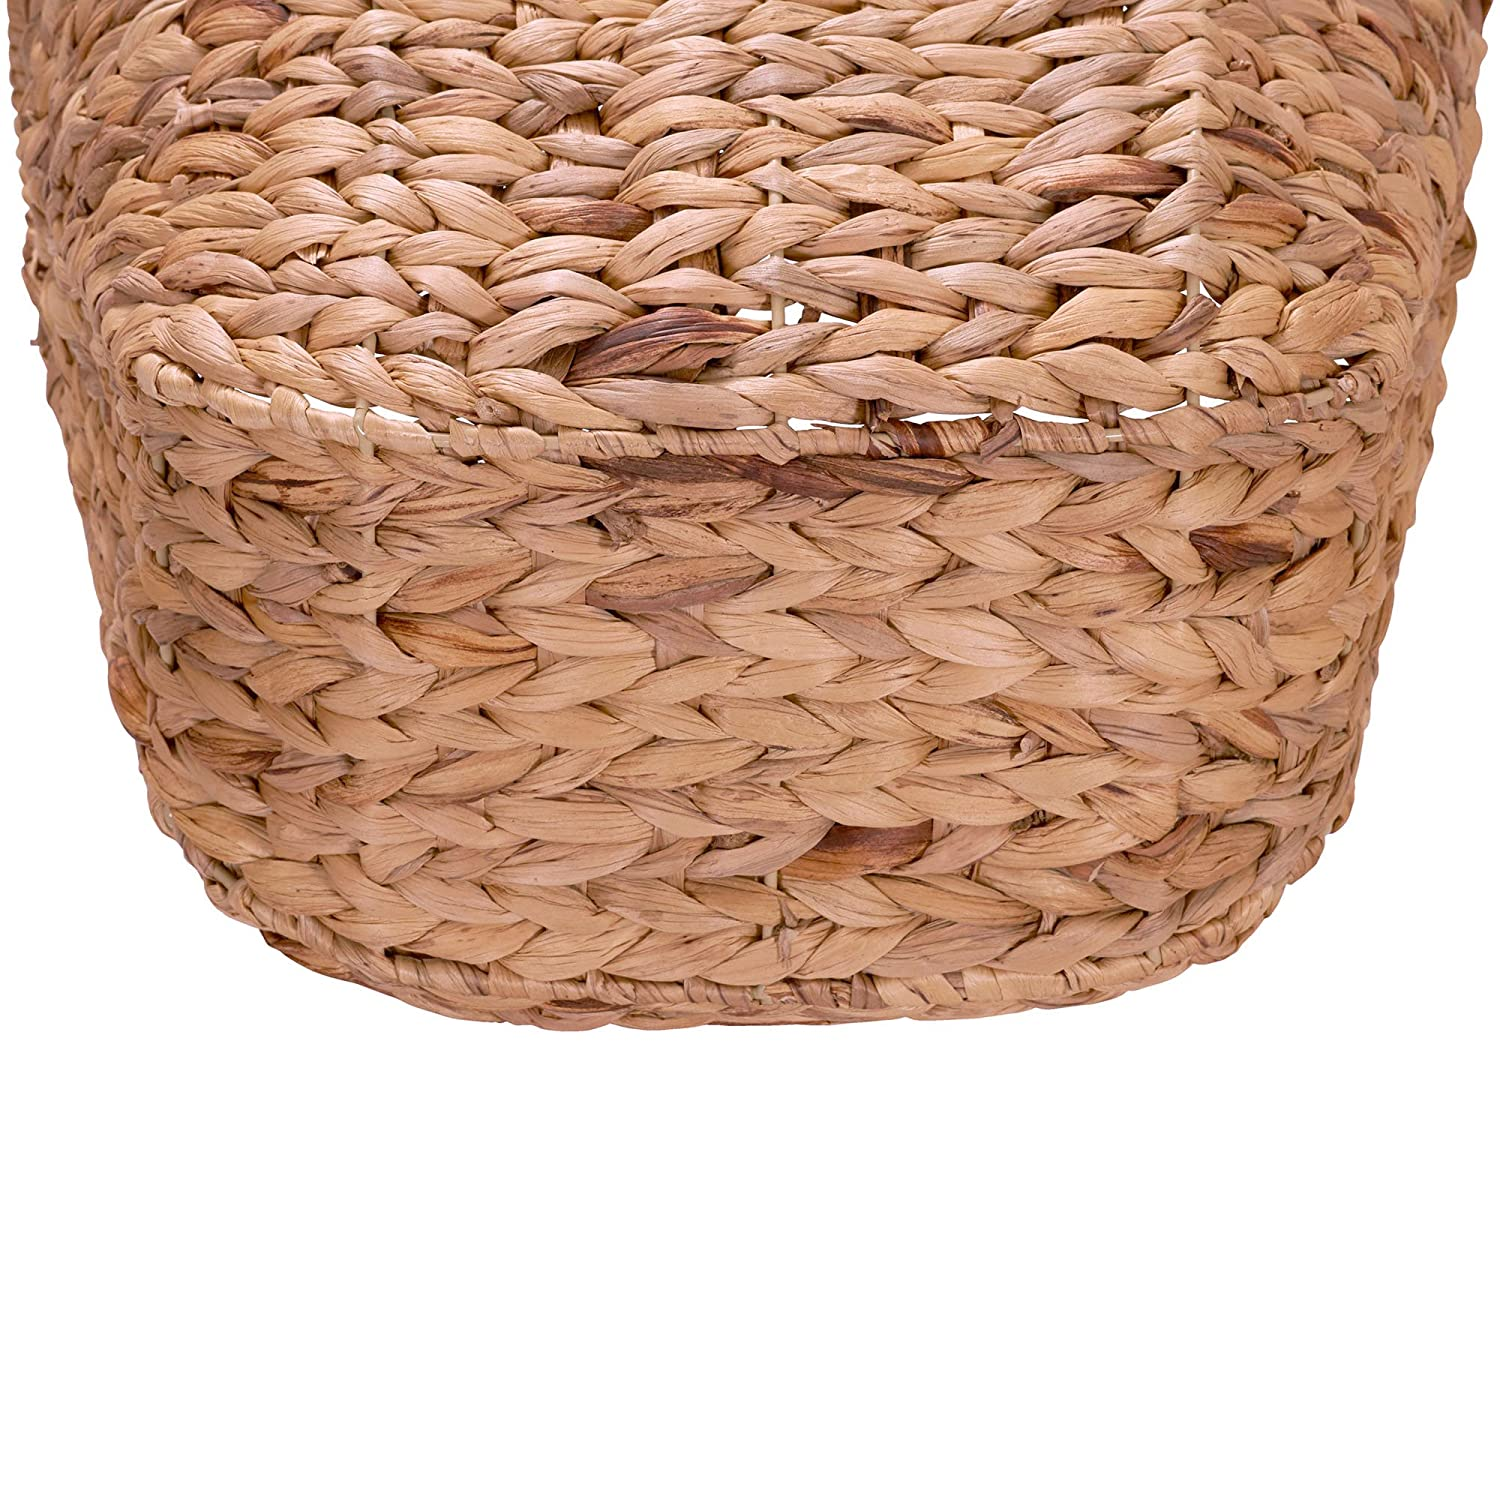 Household Essentials Ml 4002 Tall Water Hyacinth Wicker Basket With Handles Natural Brown Natural Laundry Baskets Laundry Storage Organization